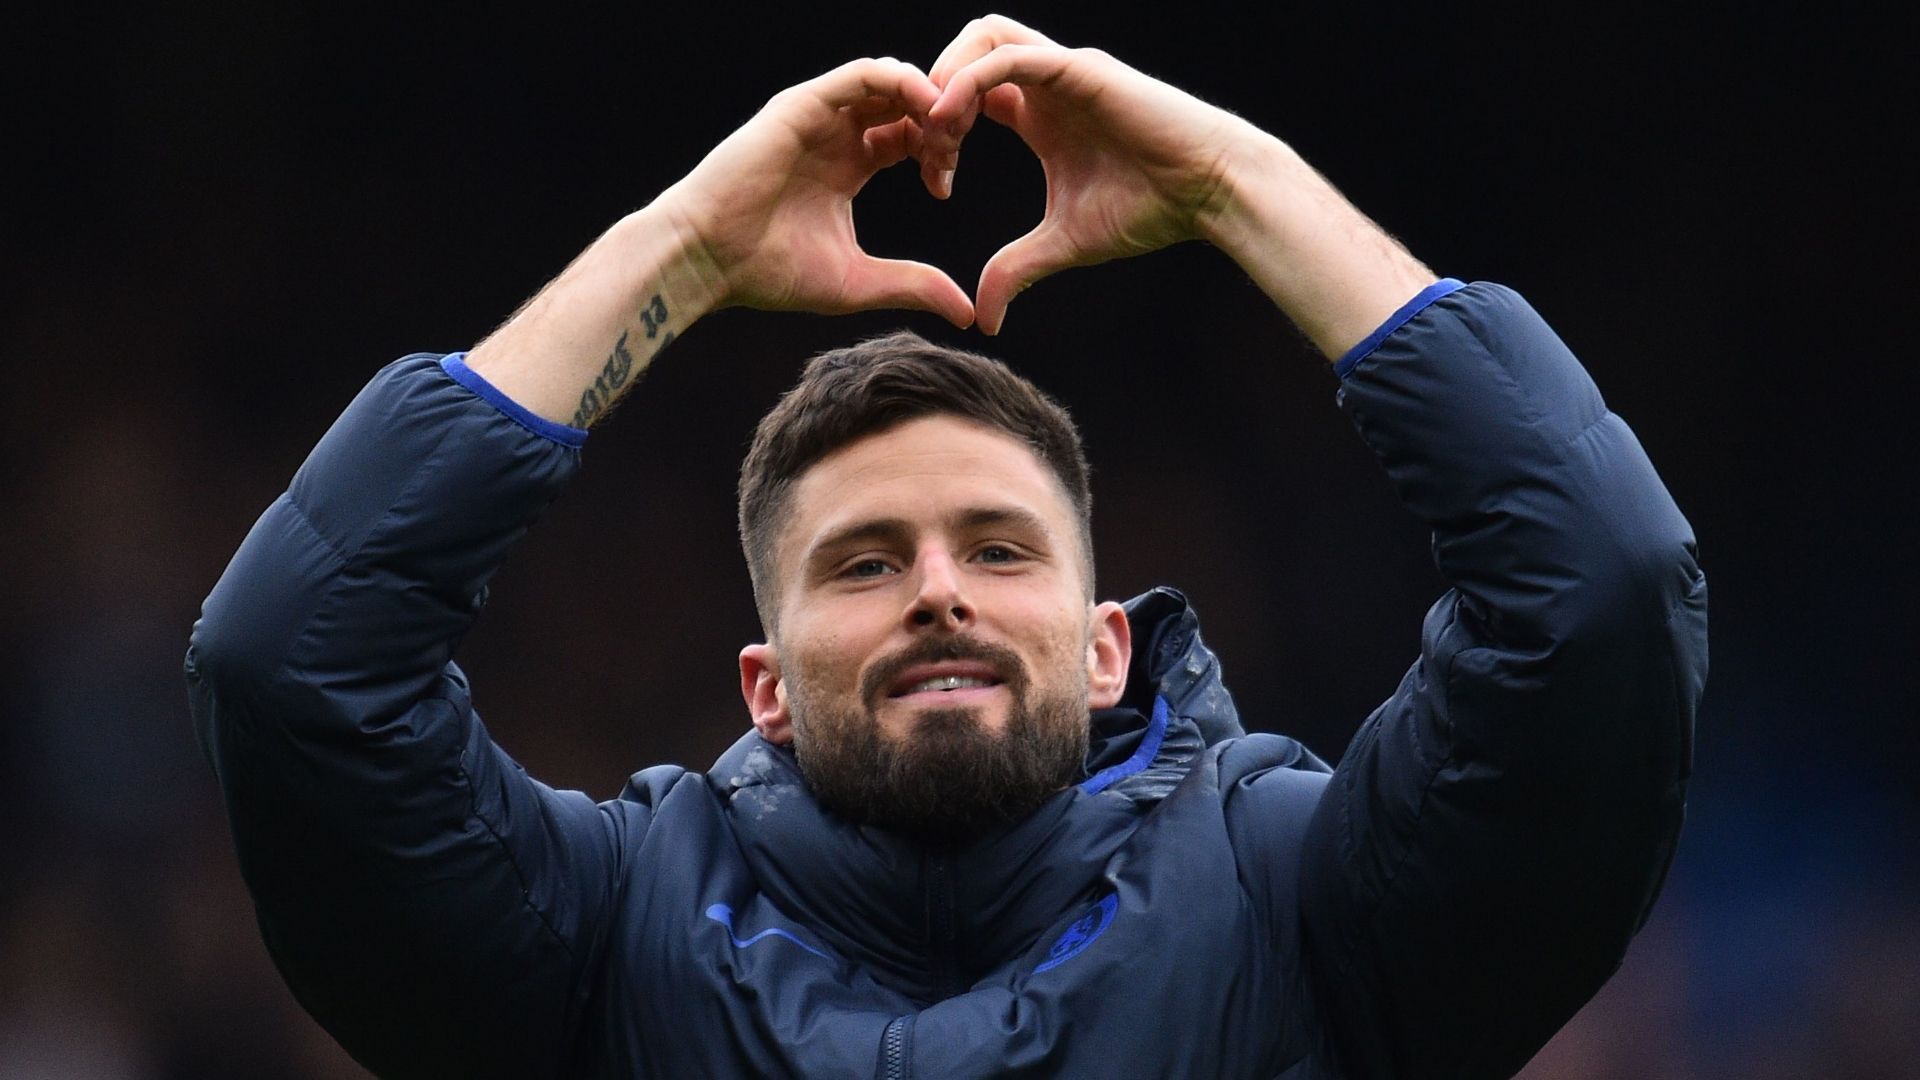 'I'm happy here again' - Giroud makes Chelsea U-turn & is open to signing new deal